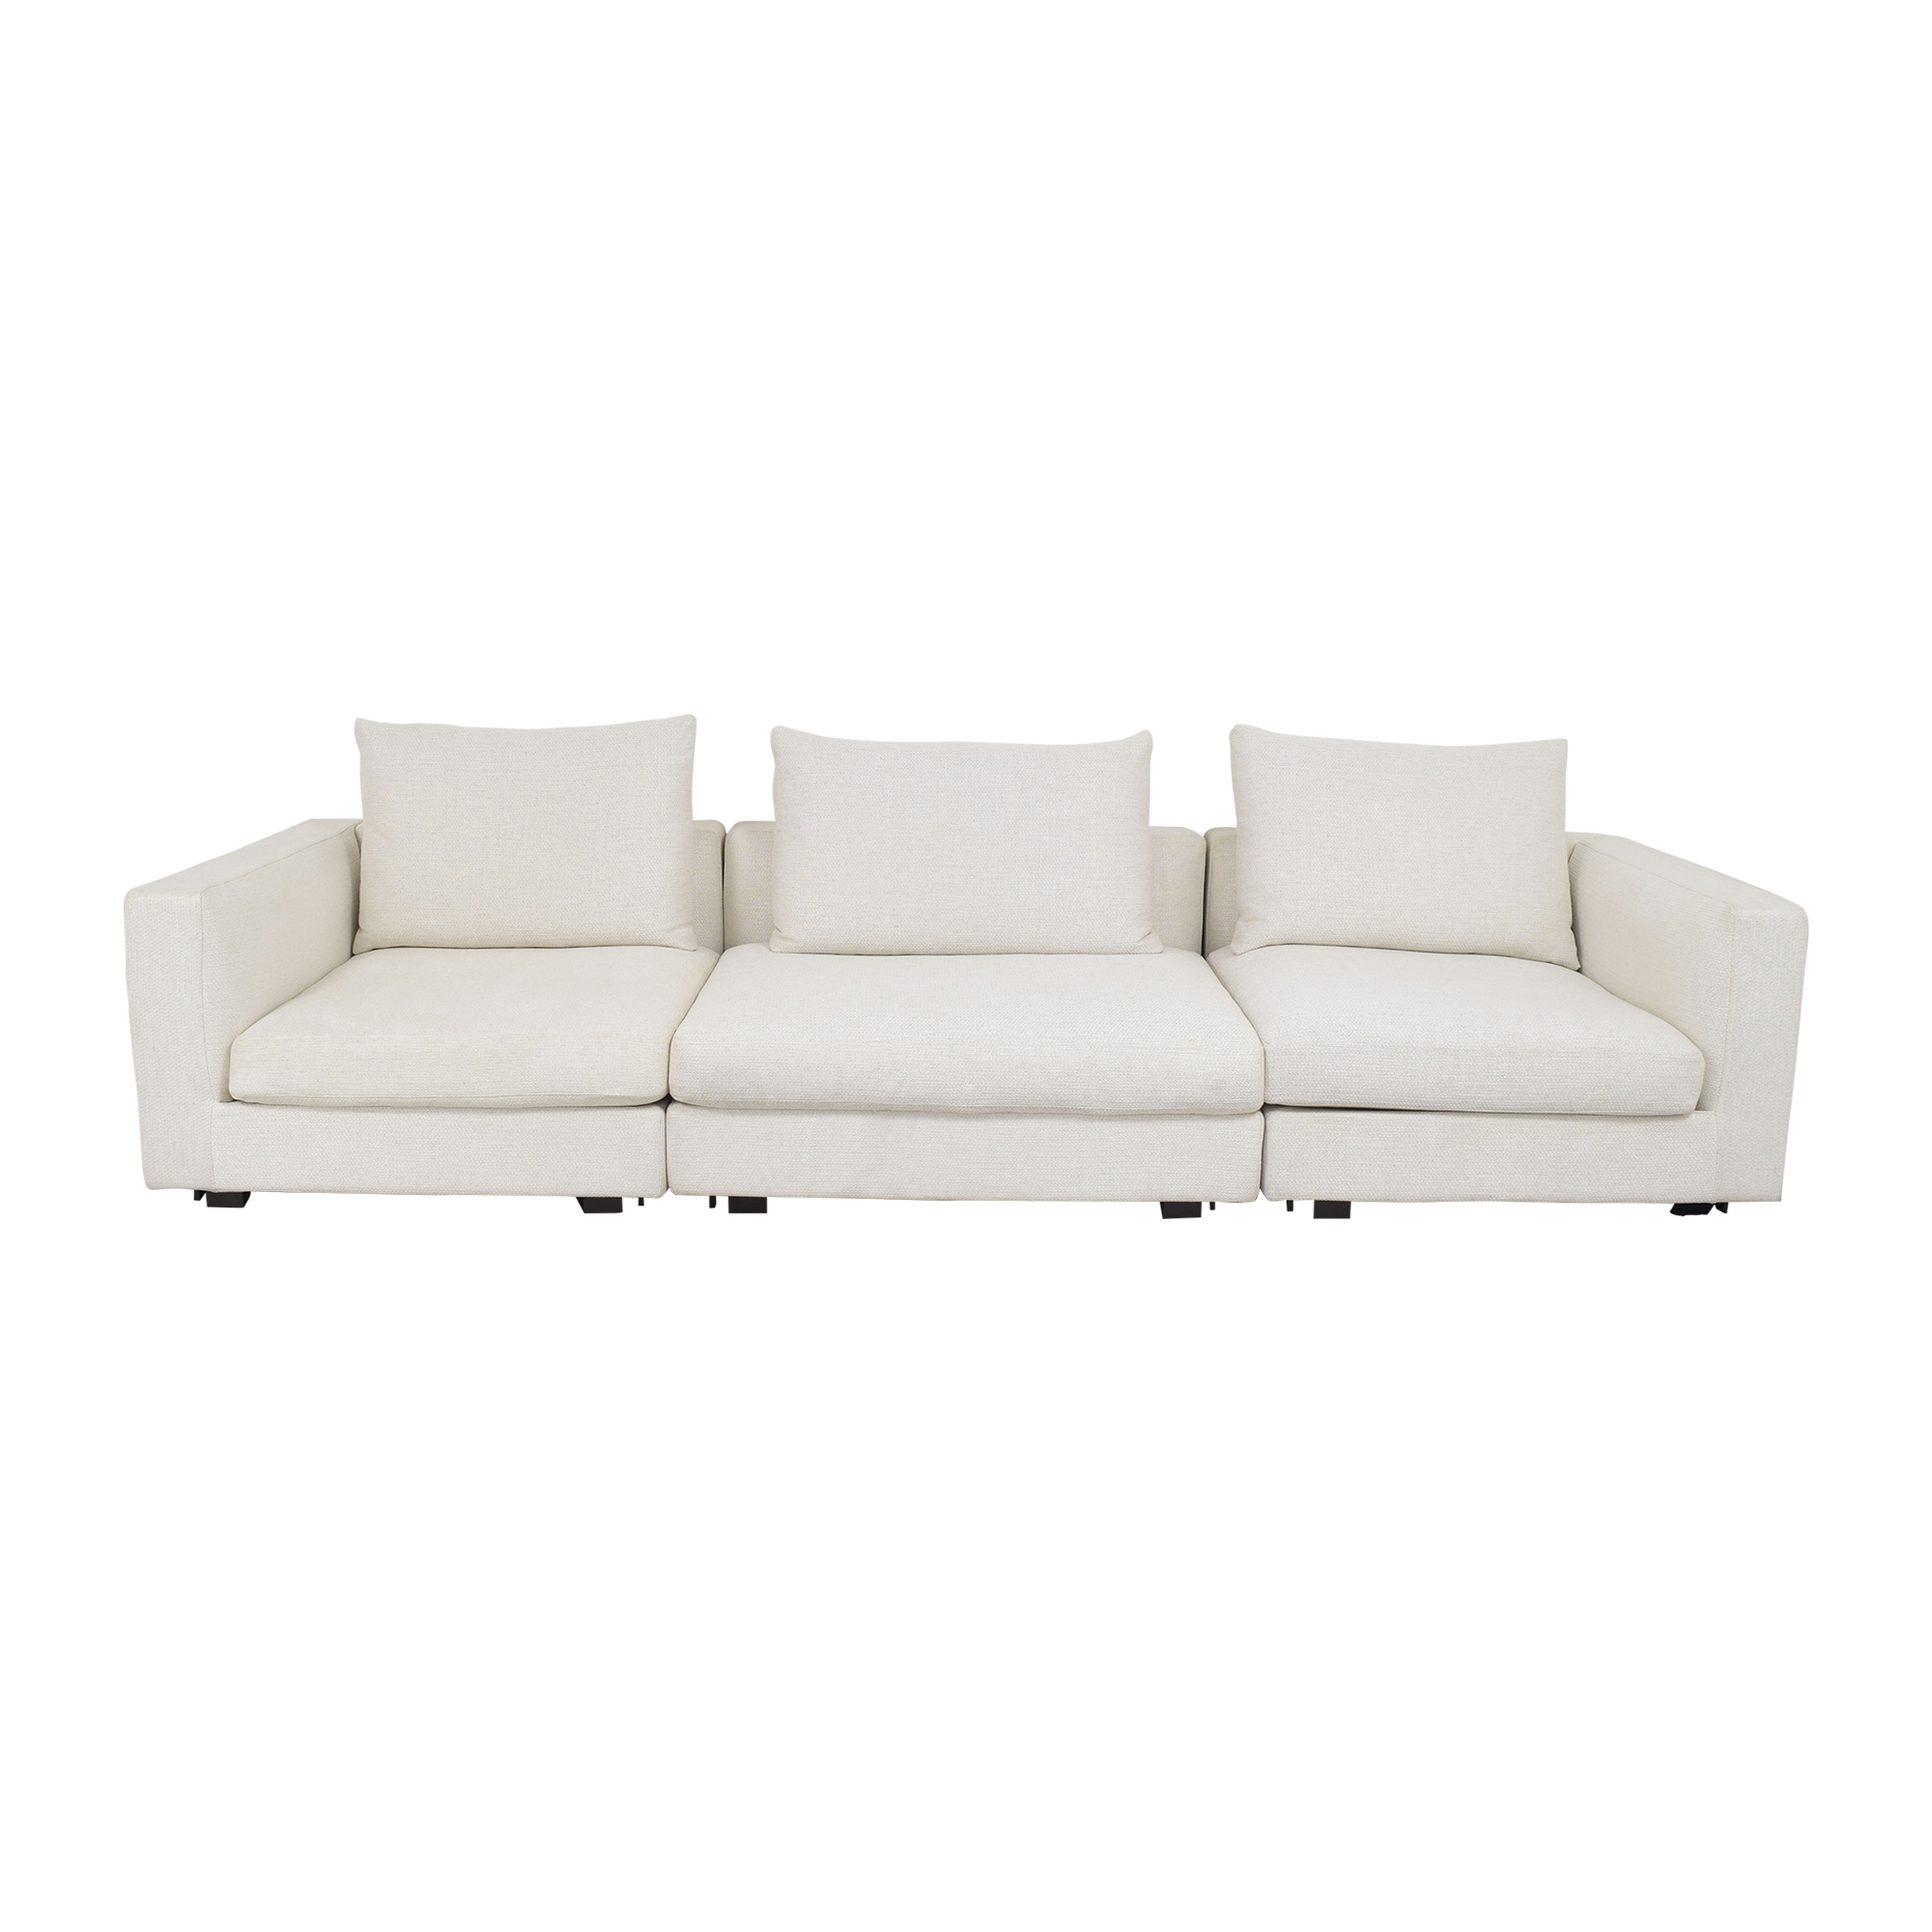 Camerich Camerich Freetown Sectional Sofa with Ottoman pa